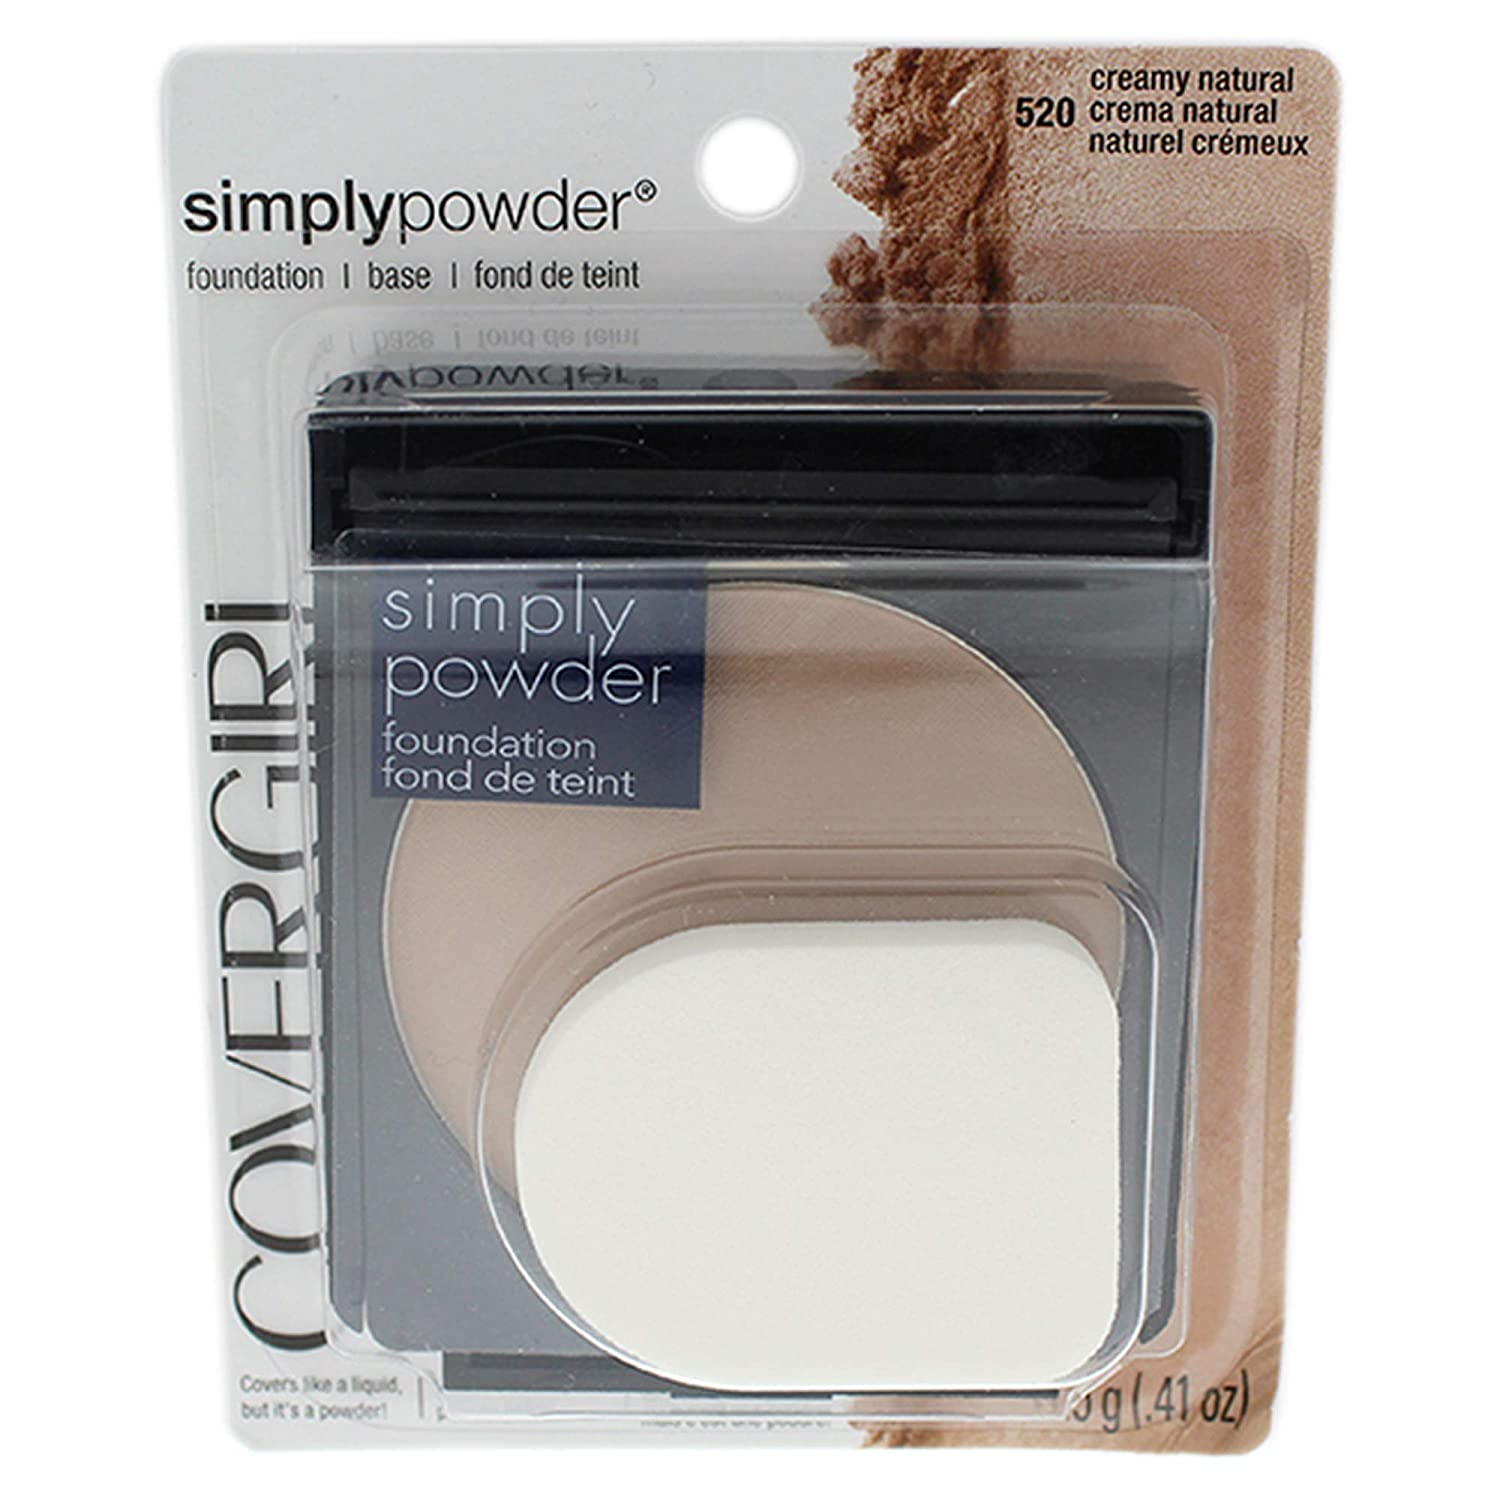 CoverGirl Simply Powder Foundation, Creamy Natural